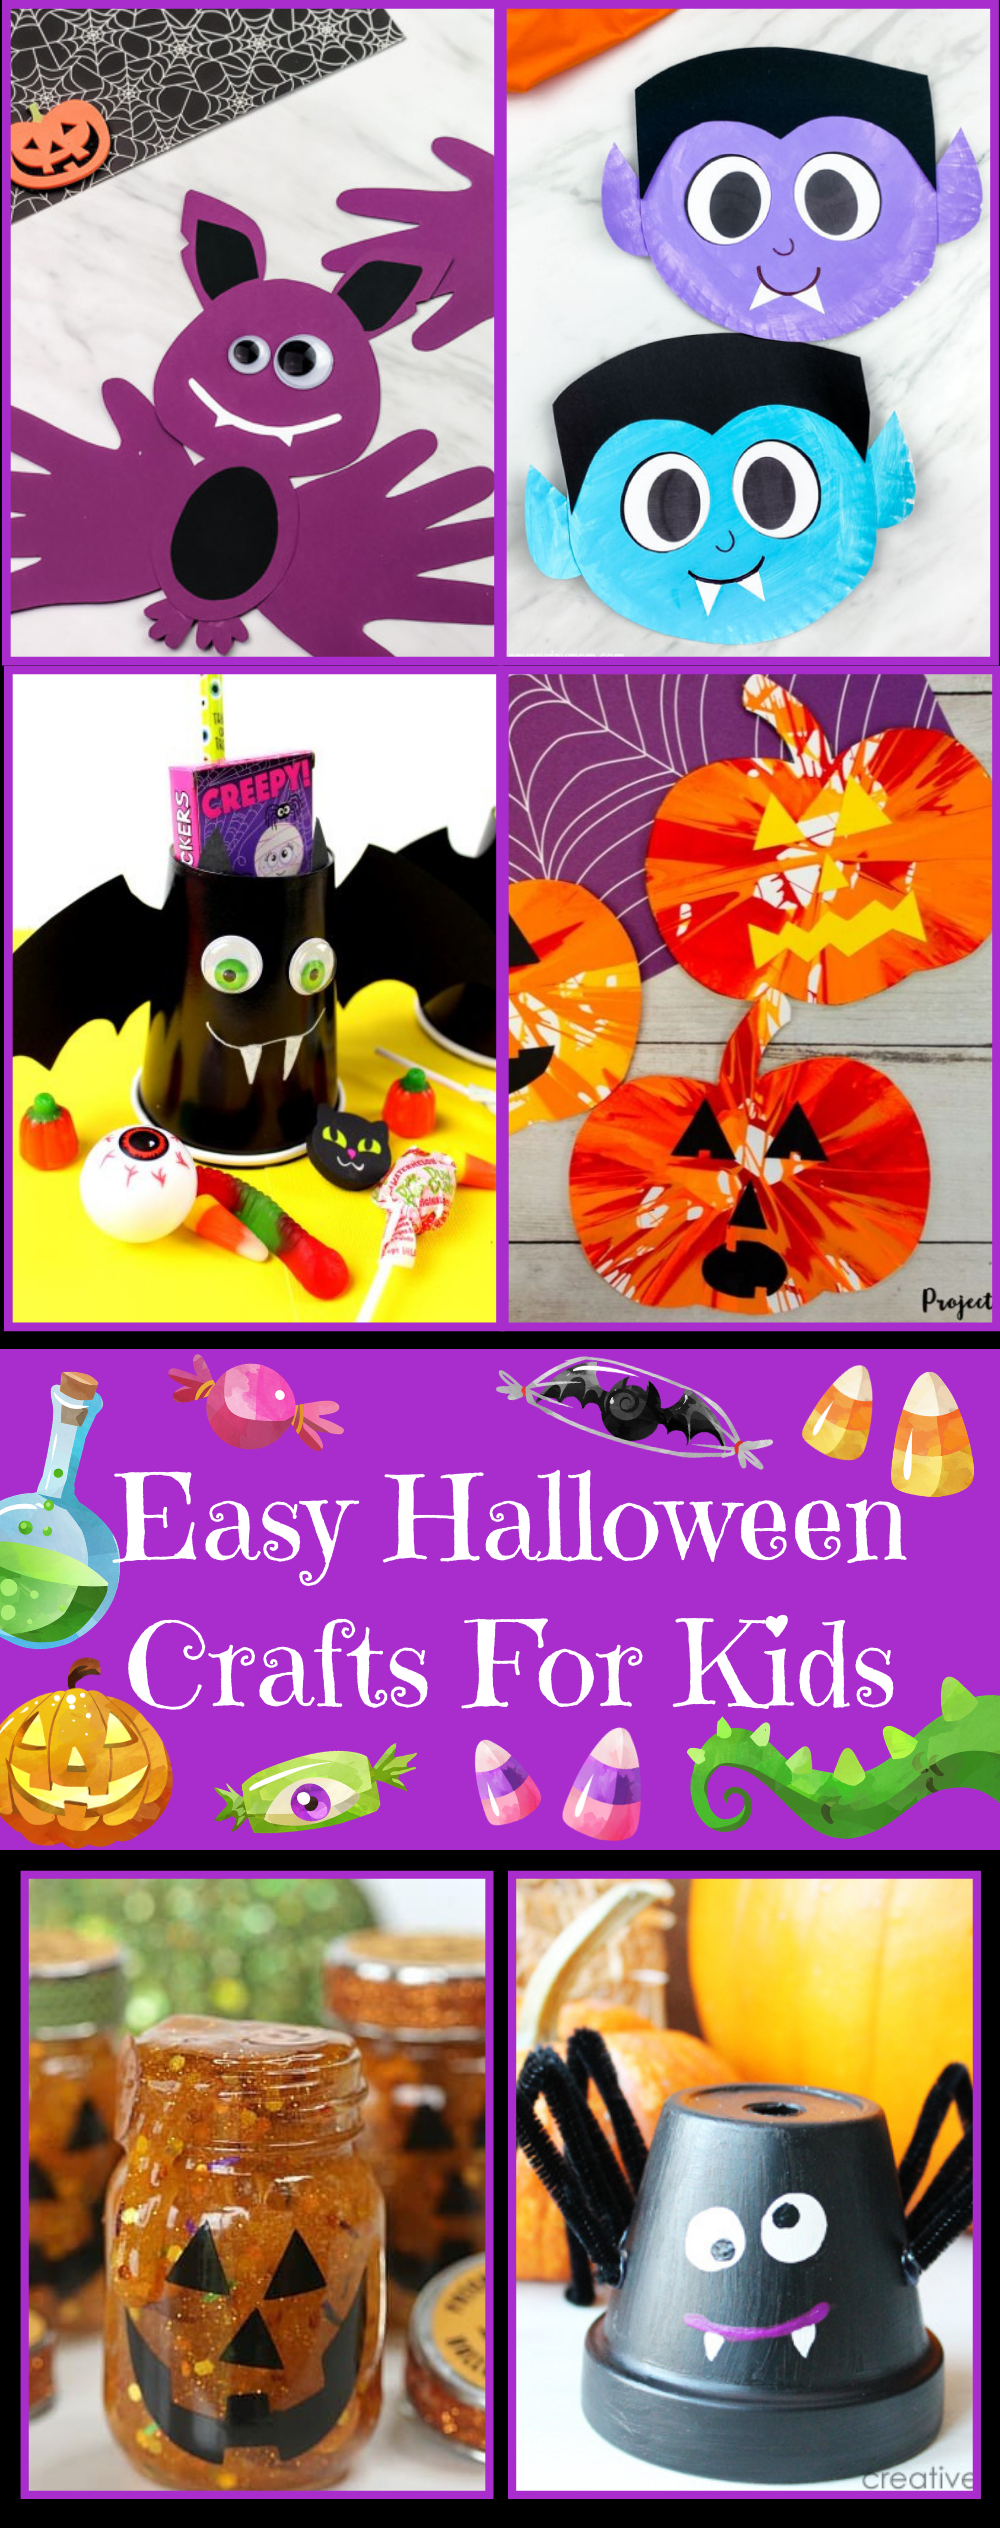 Easy Halloween Crafts for Kids 15 awesome and easy Halloween crafts that your kids are sure to love!